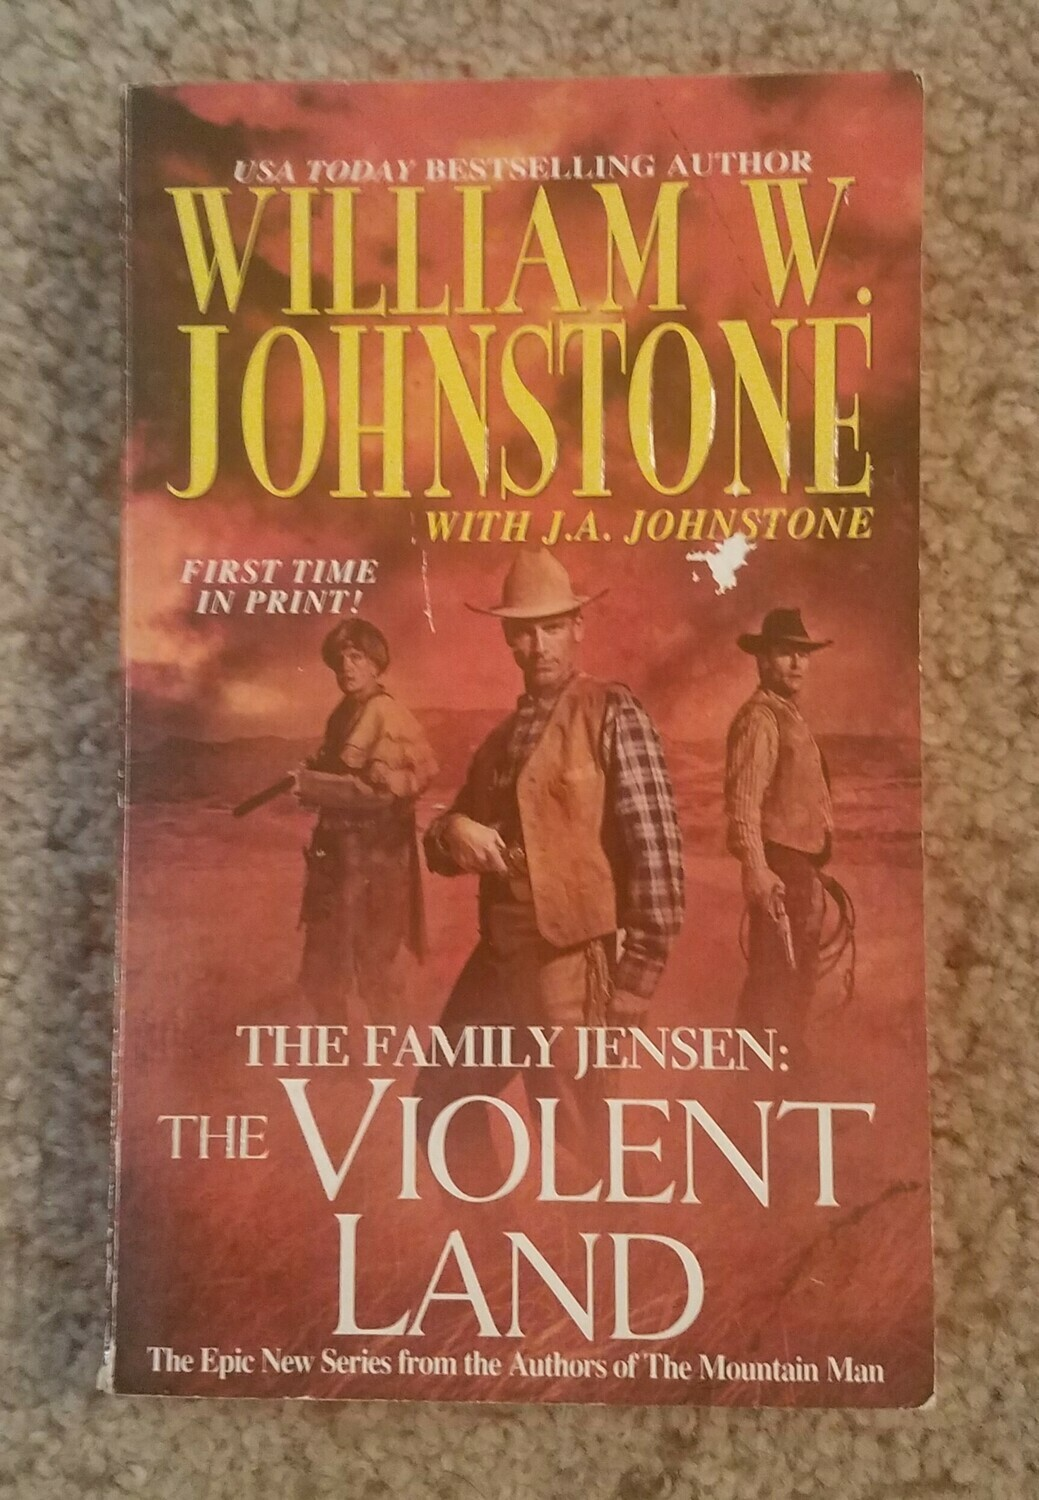 The Family Jensen: The Violent Land by William W. Johnstone with J.A. Johnstone